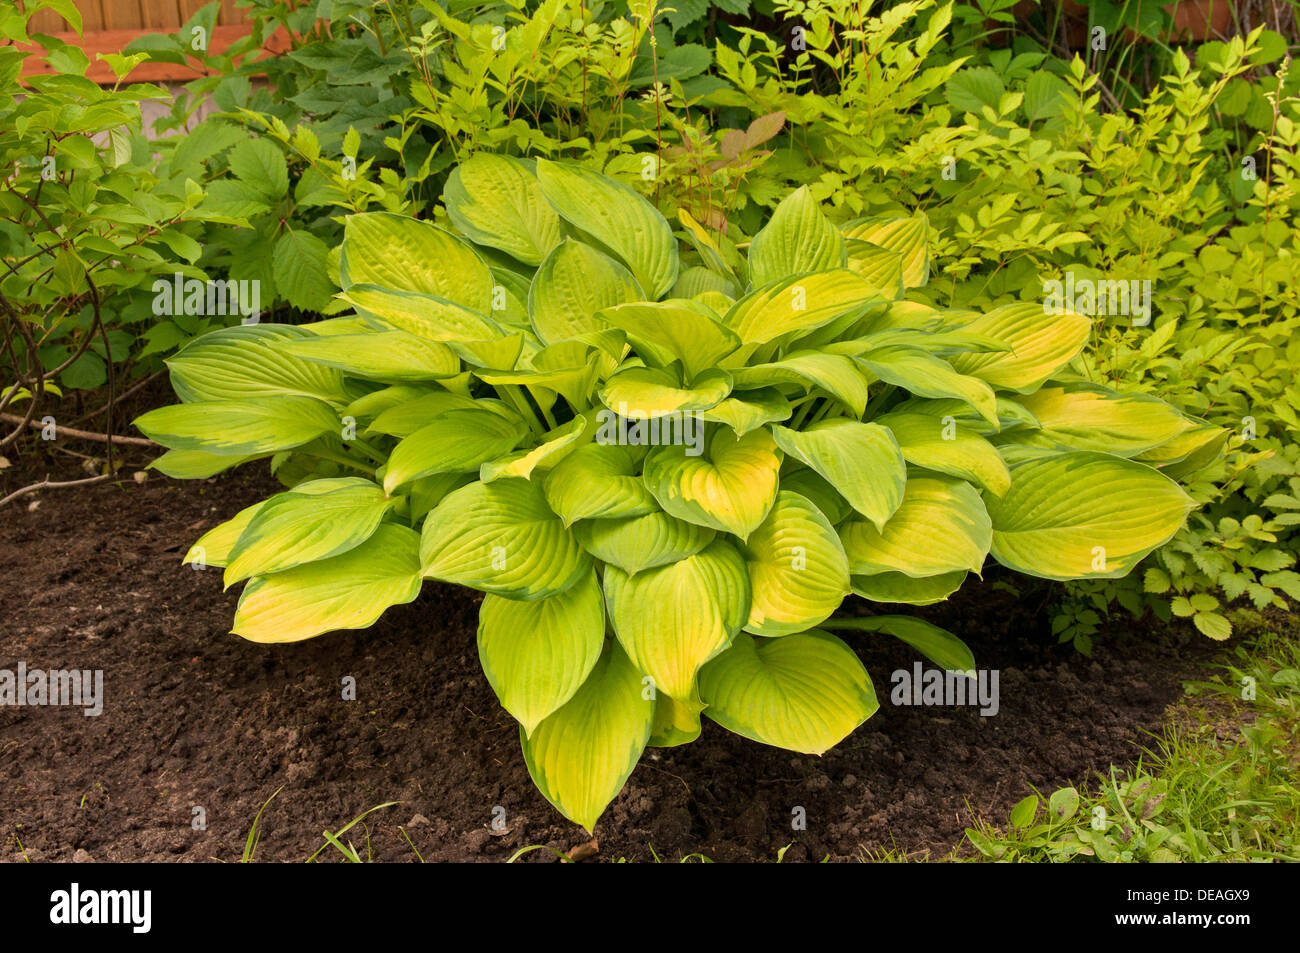 Hosta With Yellow Leaves In The Garden Stock Photo 60469089 Alamy